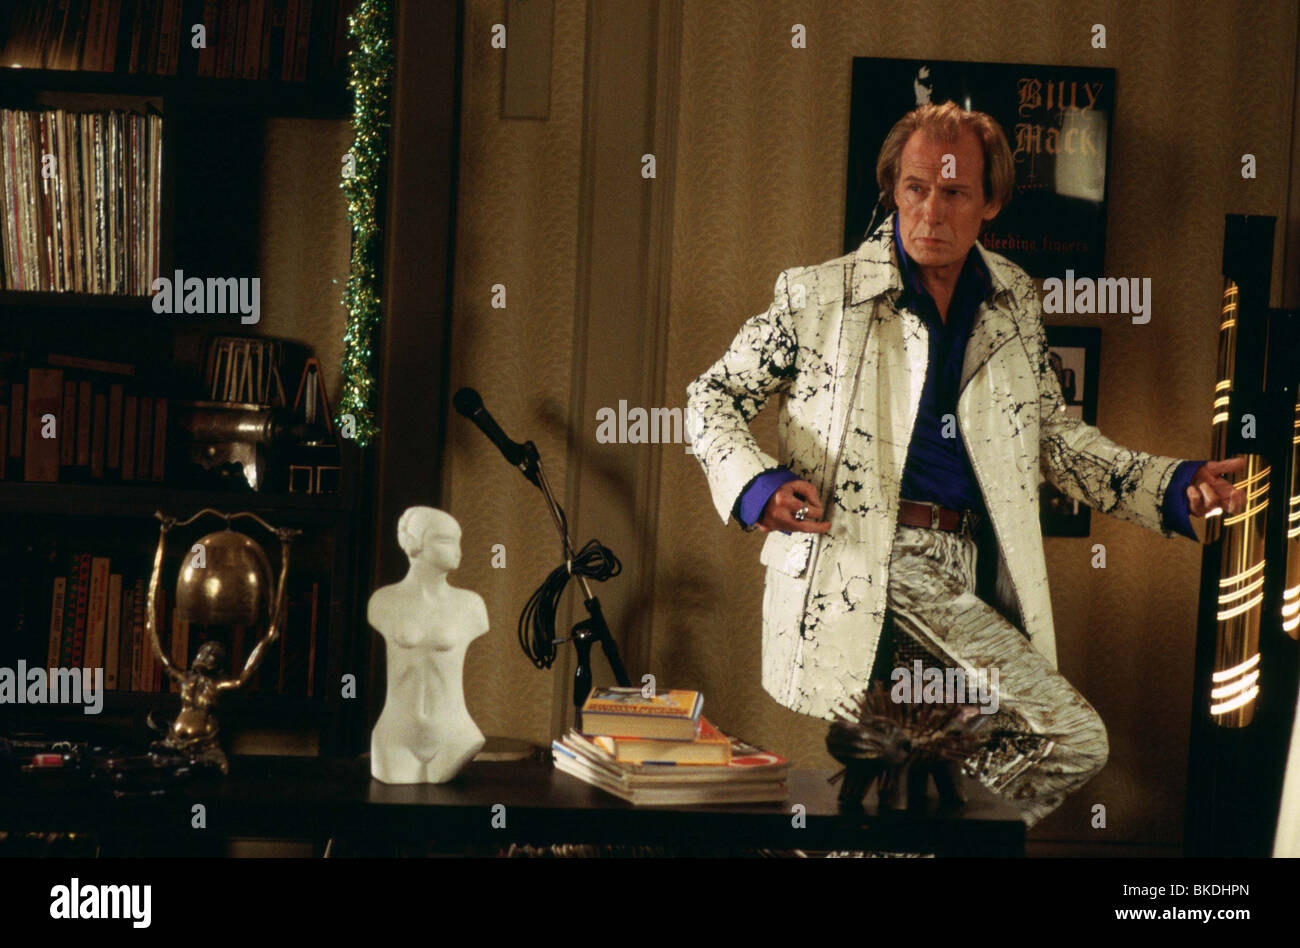 LOVE ACTUALLY (2003) BILL NIGHY LACT 001-5094 - Stock Image